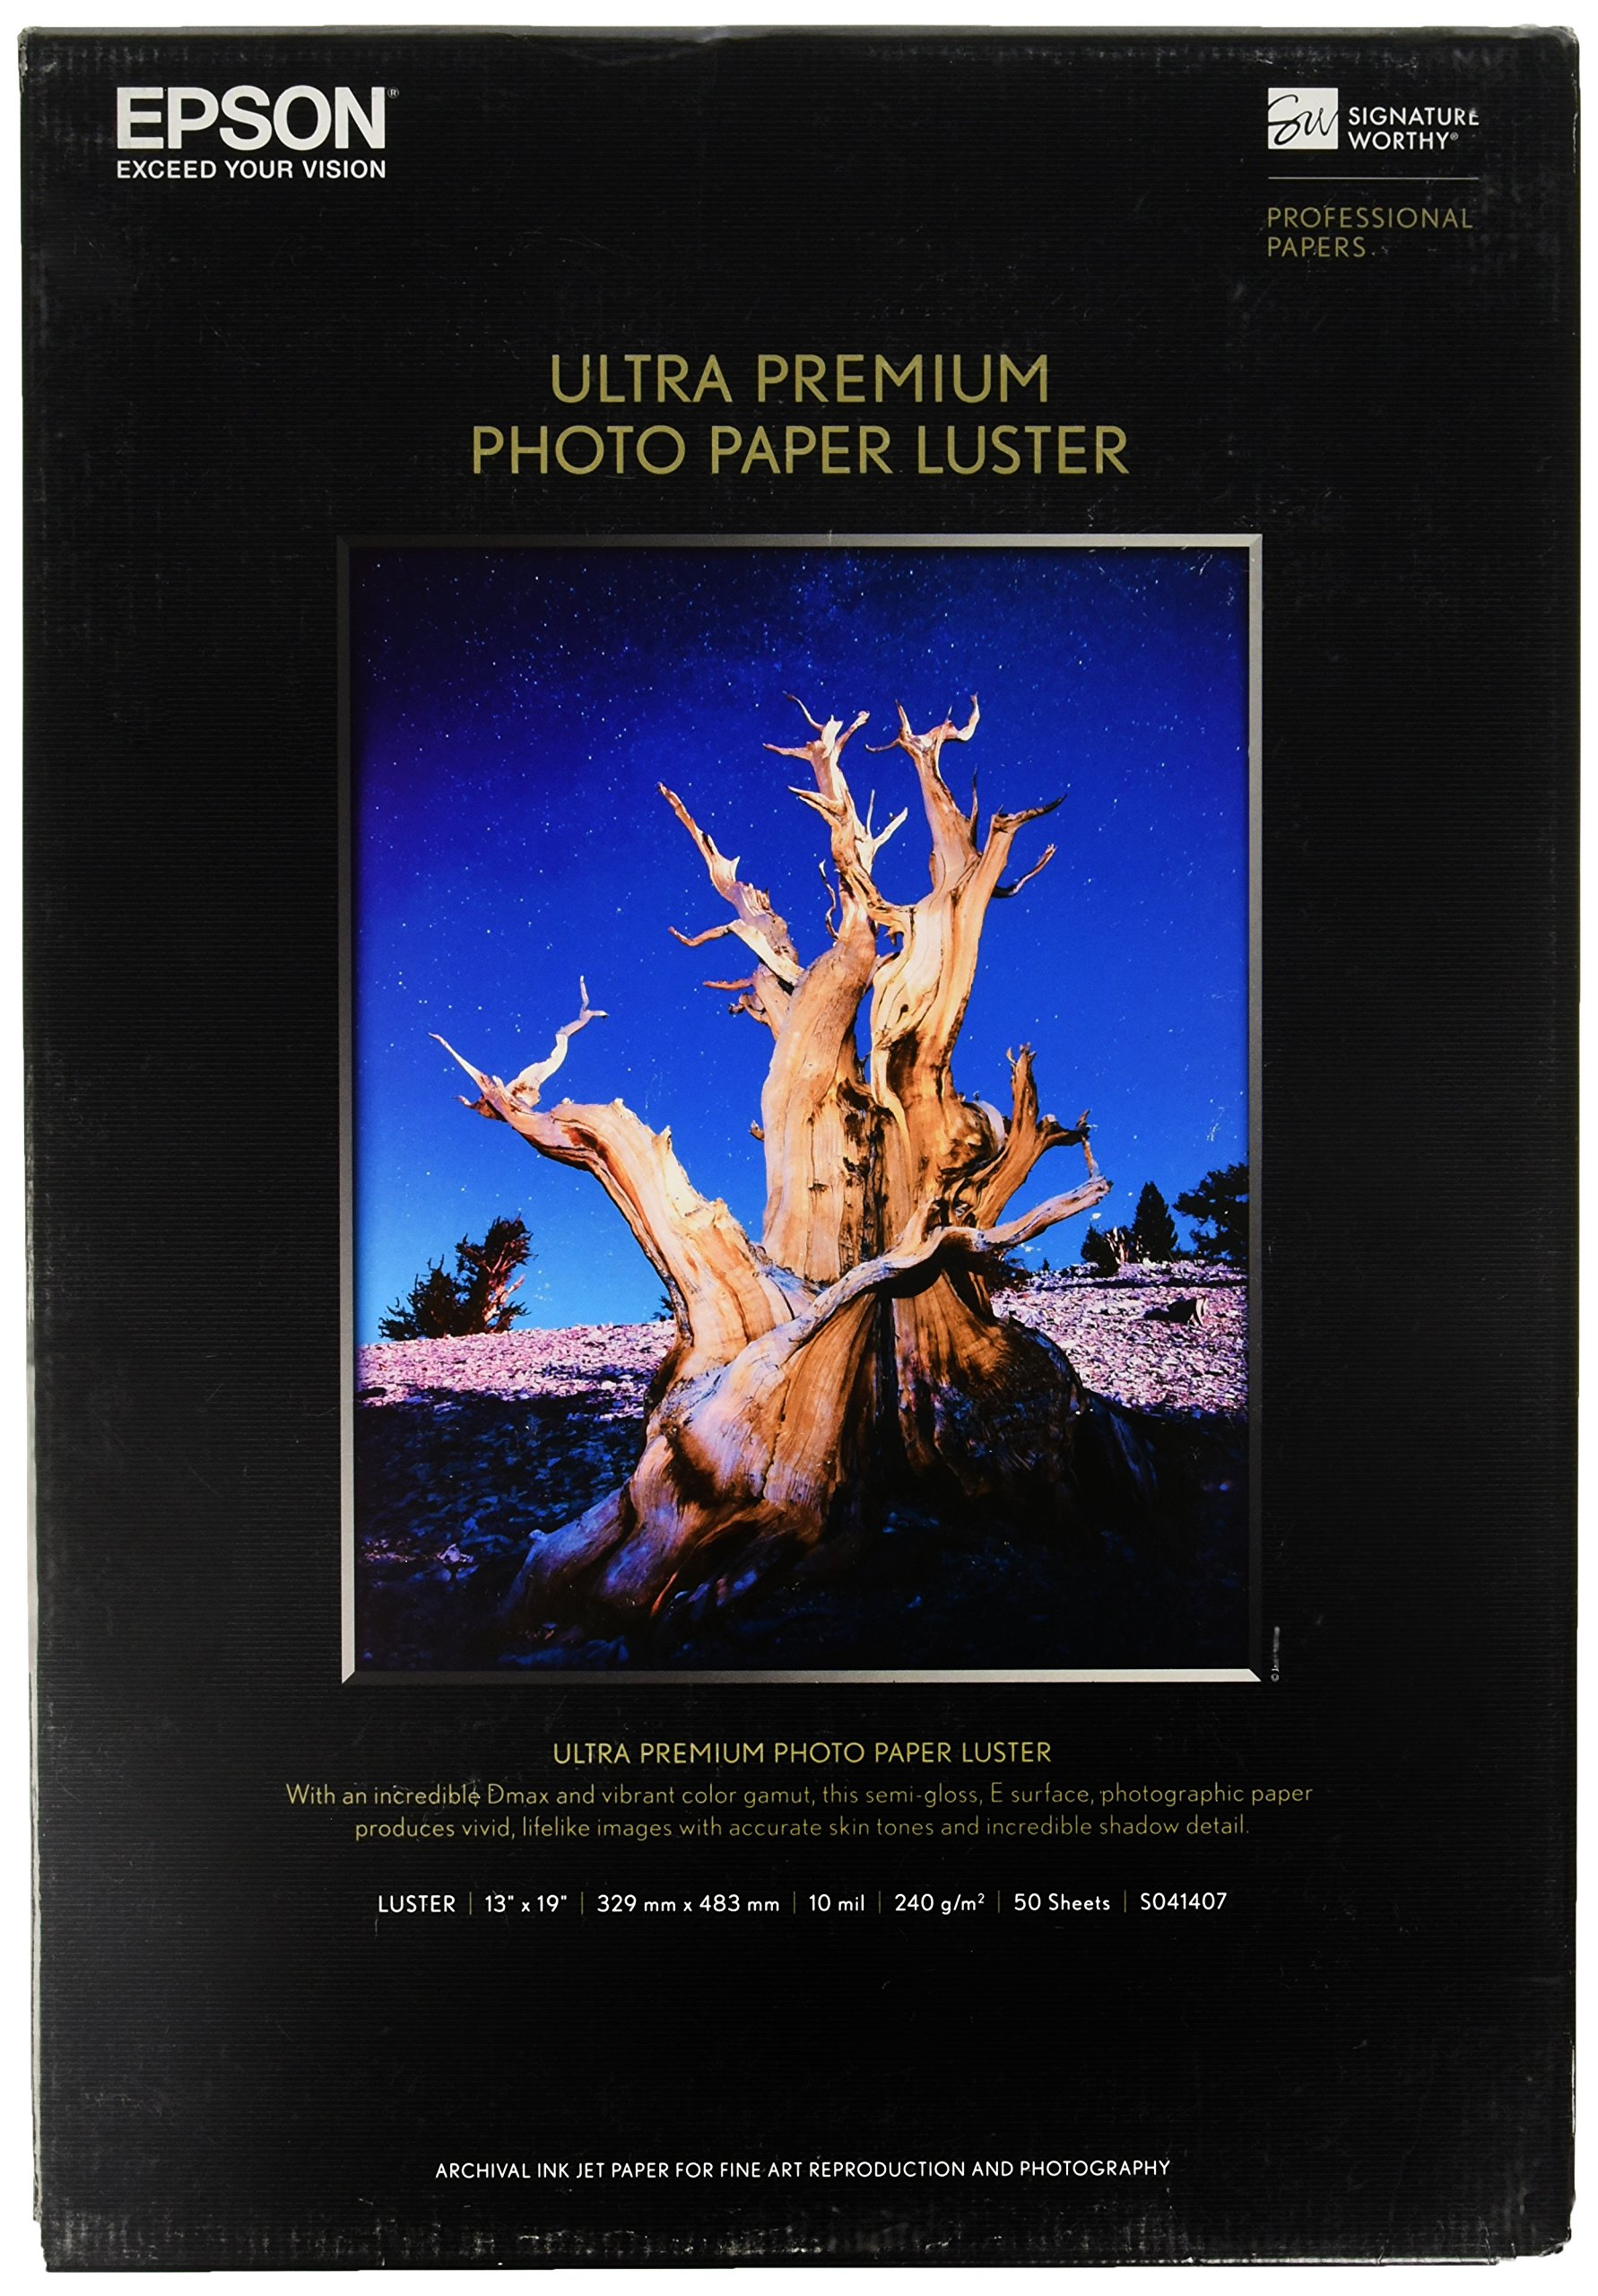 Epson Ultra Premium Photo Paper LUSTER (13x19 Inches, 50 Sheets) (S041407) by Epson